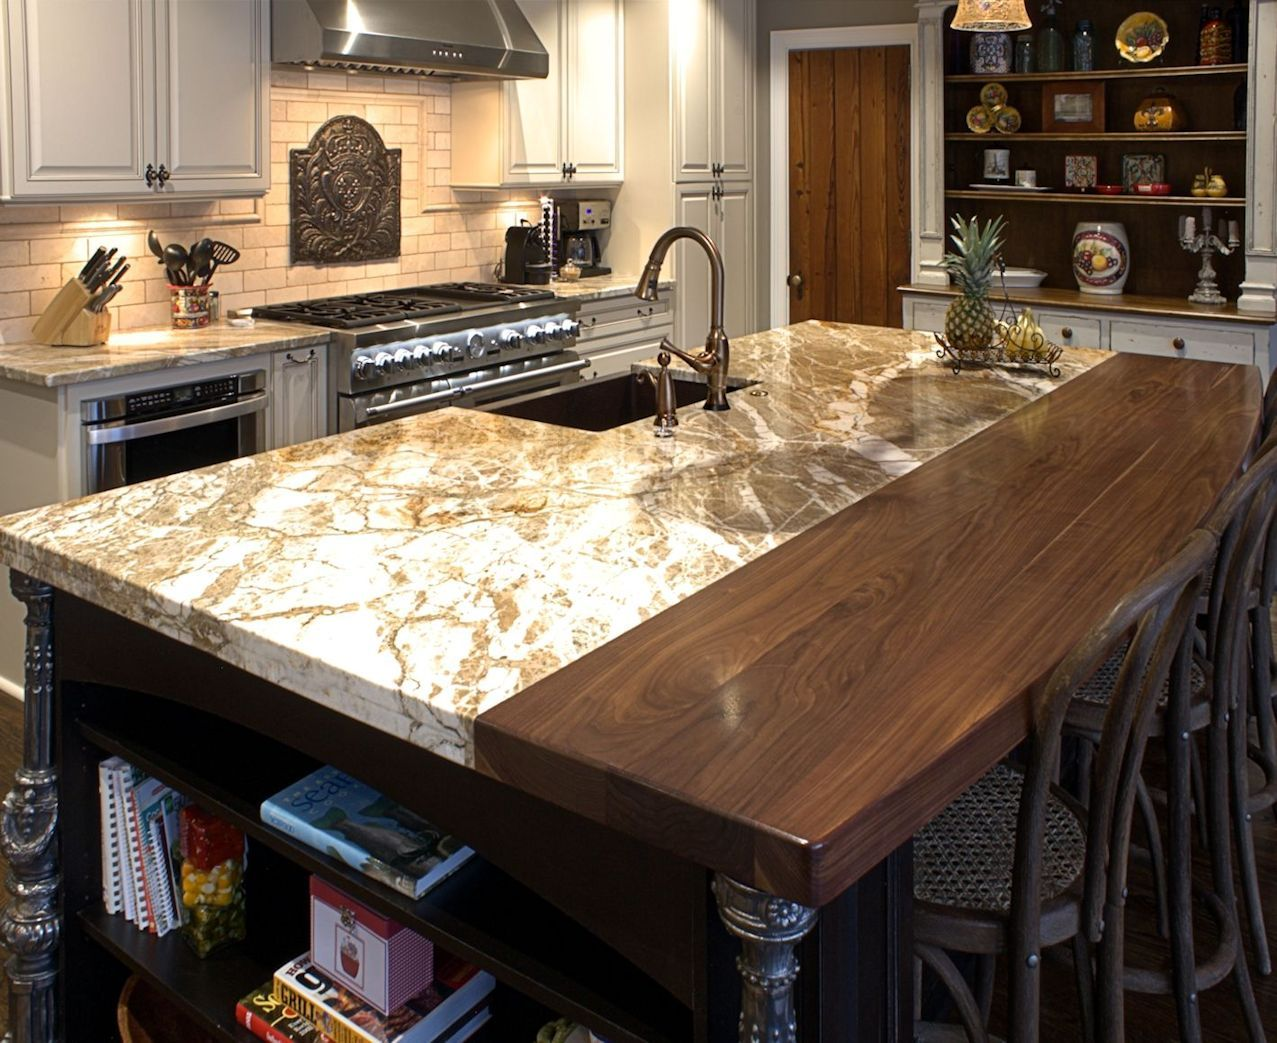 Kitchen Counter Wood Granite Upscale Wood Countertops A Touch Of Warmth Or A Grand Statement Wood Countertops Island Countertops Wood Island Countertop